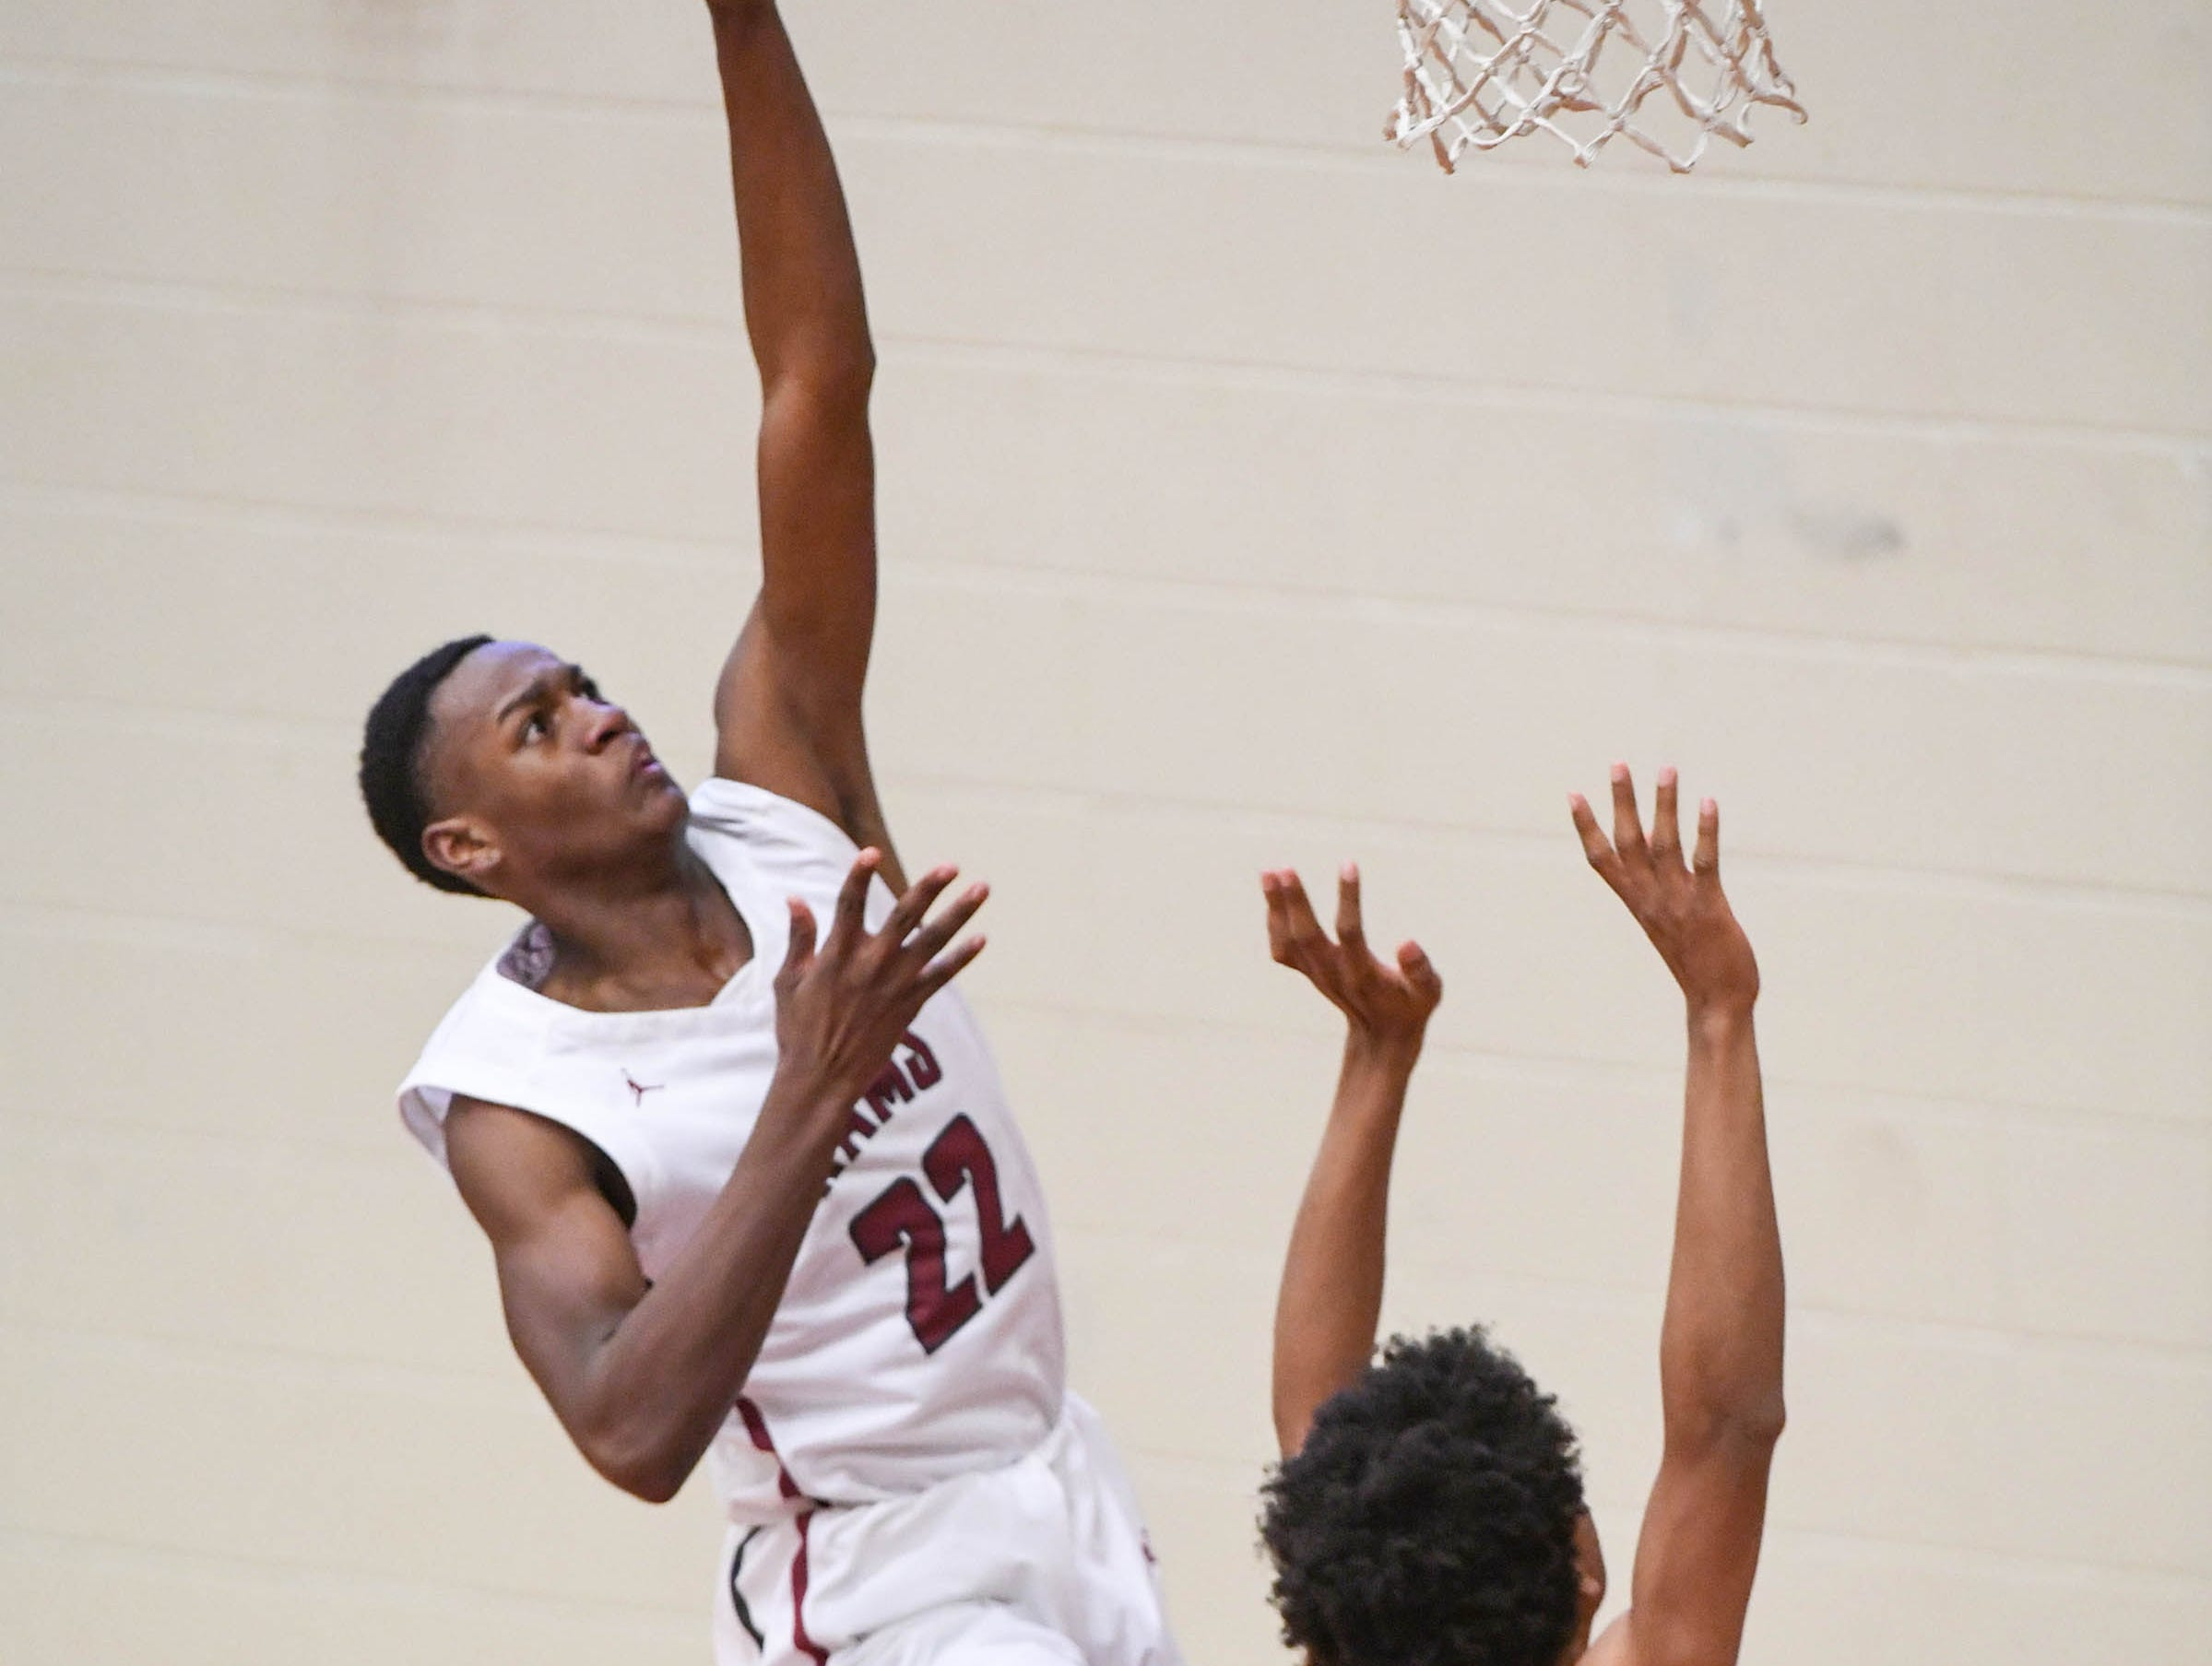 Westside sophomore Xavier Thornton(22) shoots near Woodmont junior Pedrick Williams(5) during the fourth quarter at Westside High School in Anderson on Tuesday. Westside beat Woodmont 85-57.